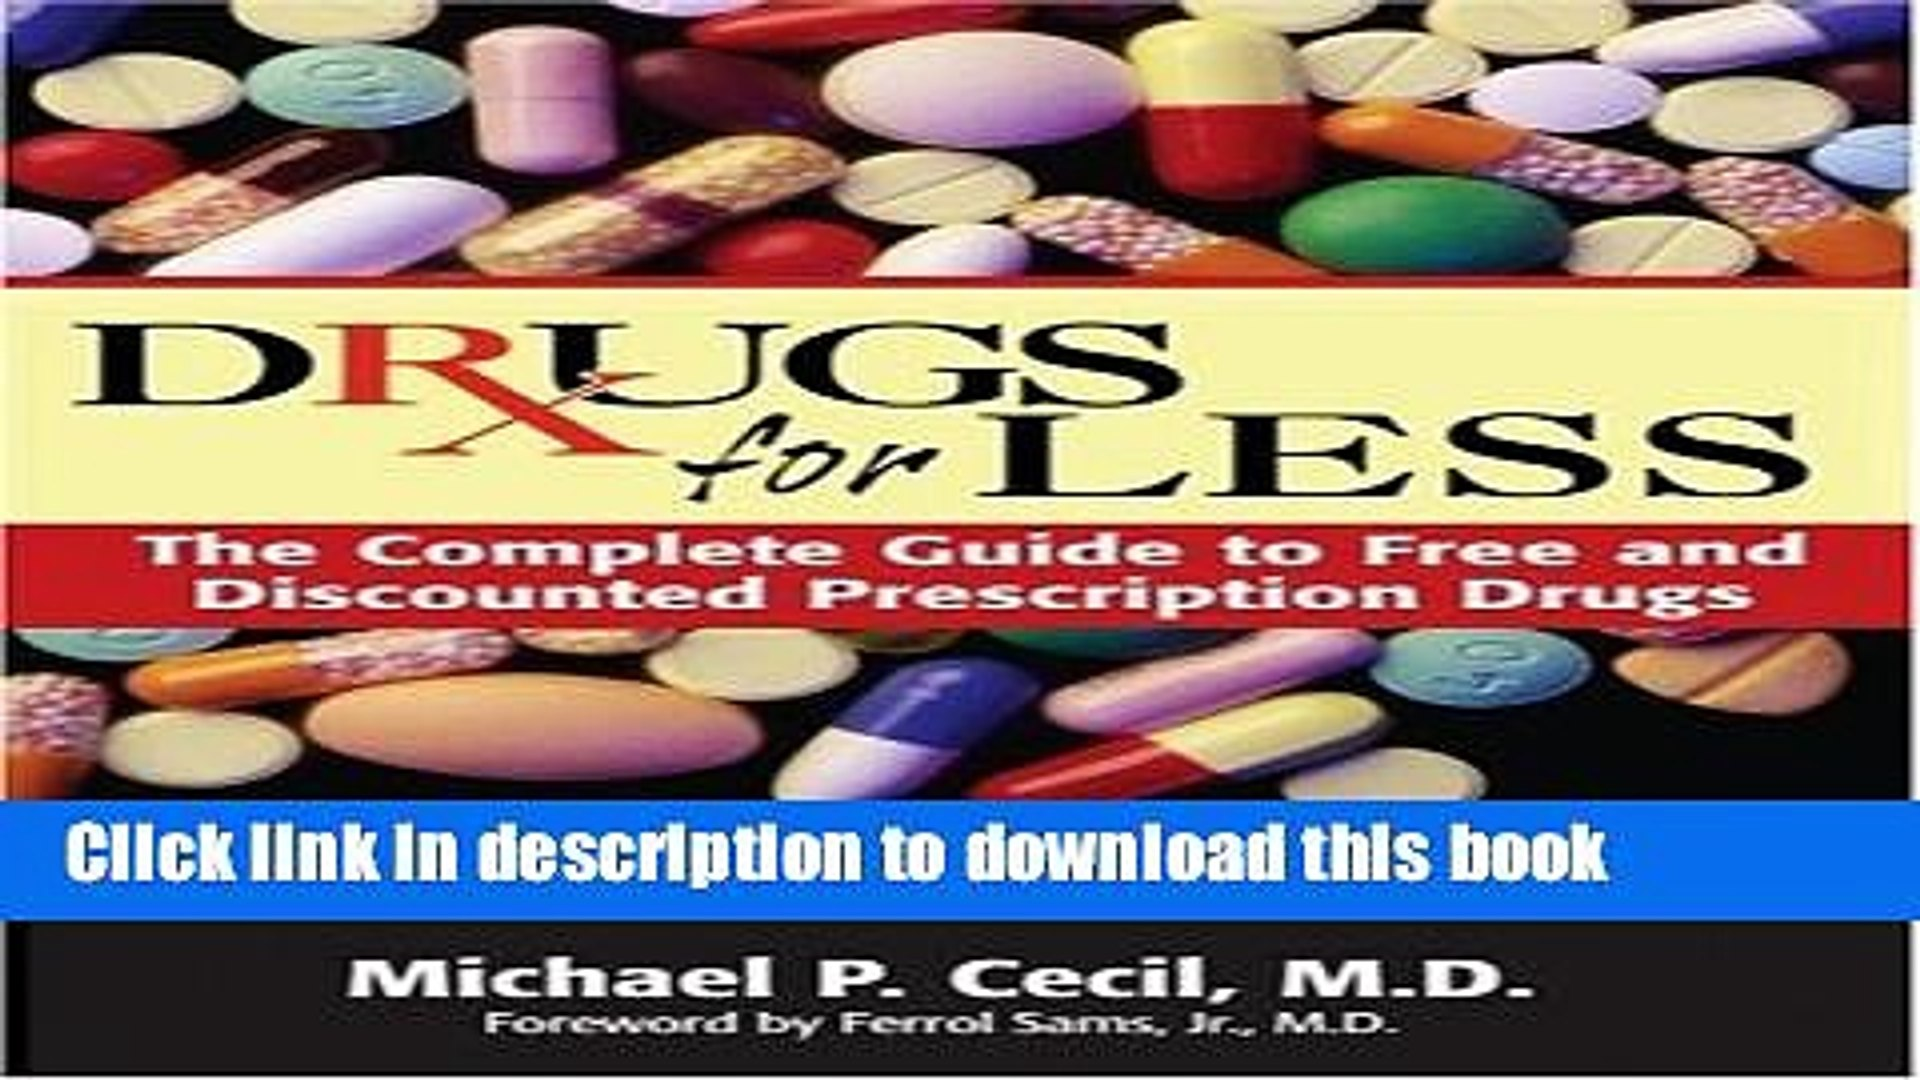 [Popular Books] Drugs For Less: The Complete Guide to Free and Discounted Prescription Drugs Free